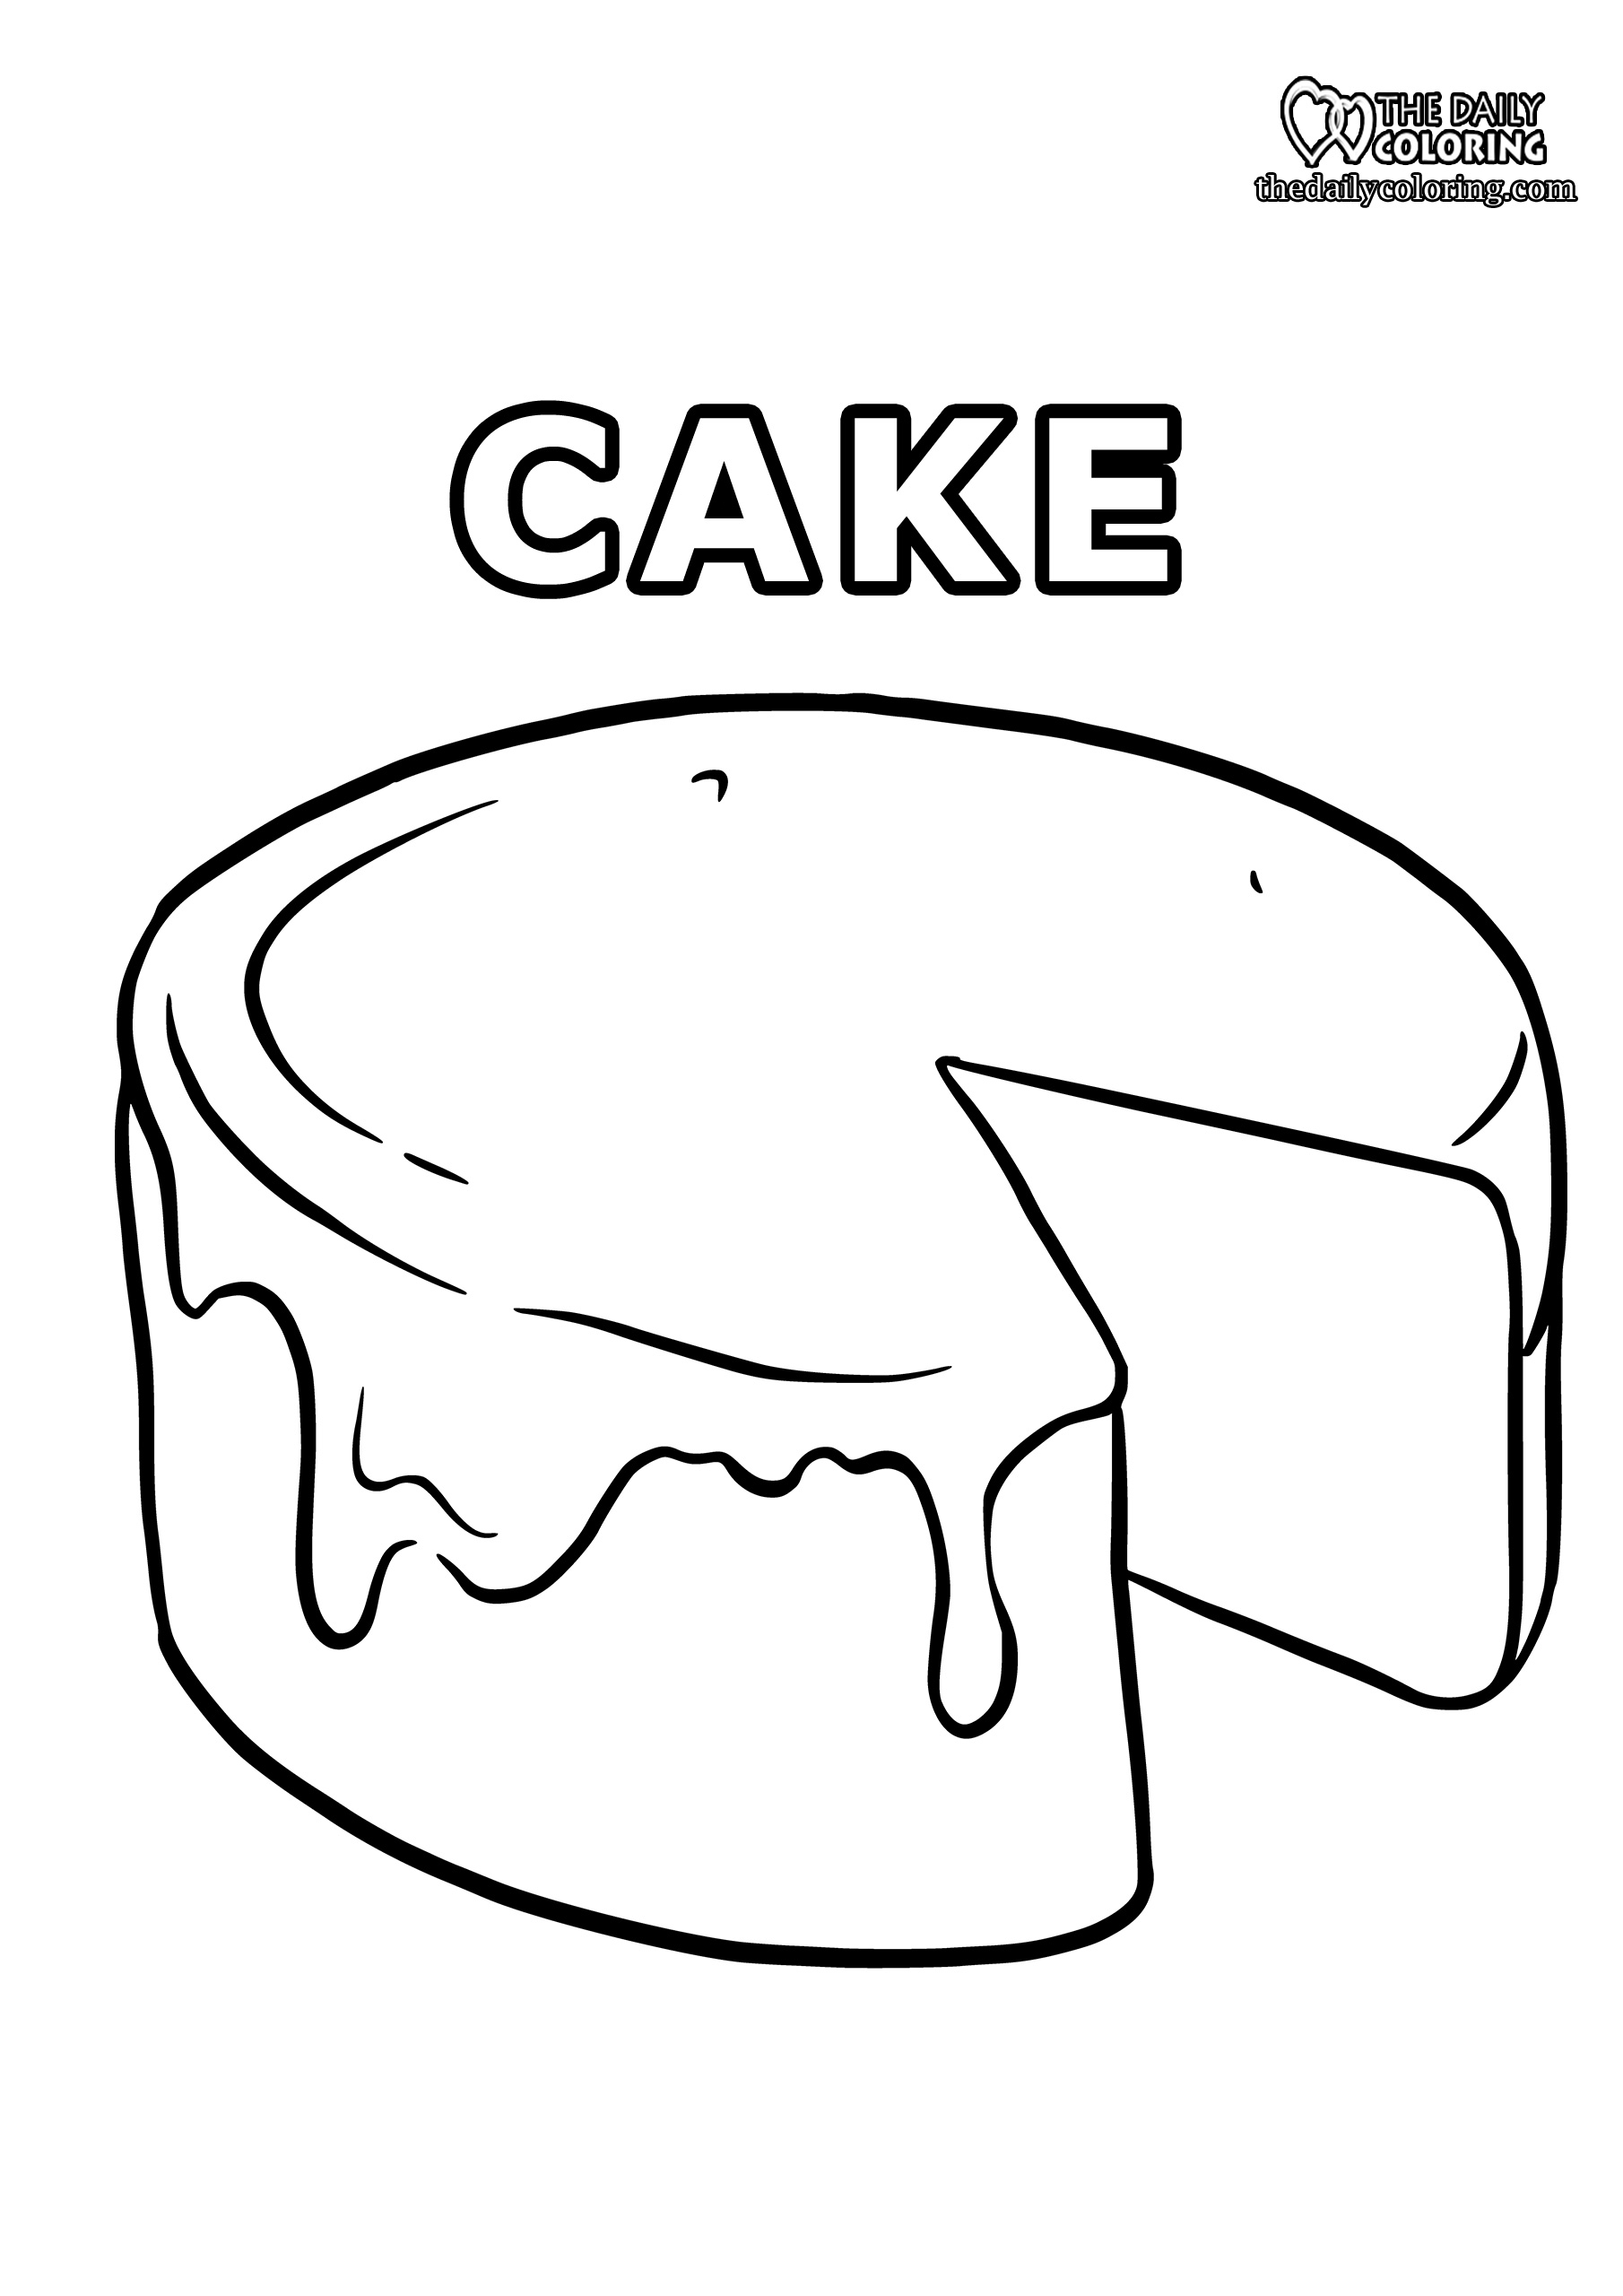 cake-coloring-page